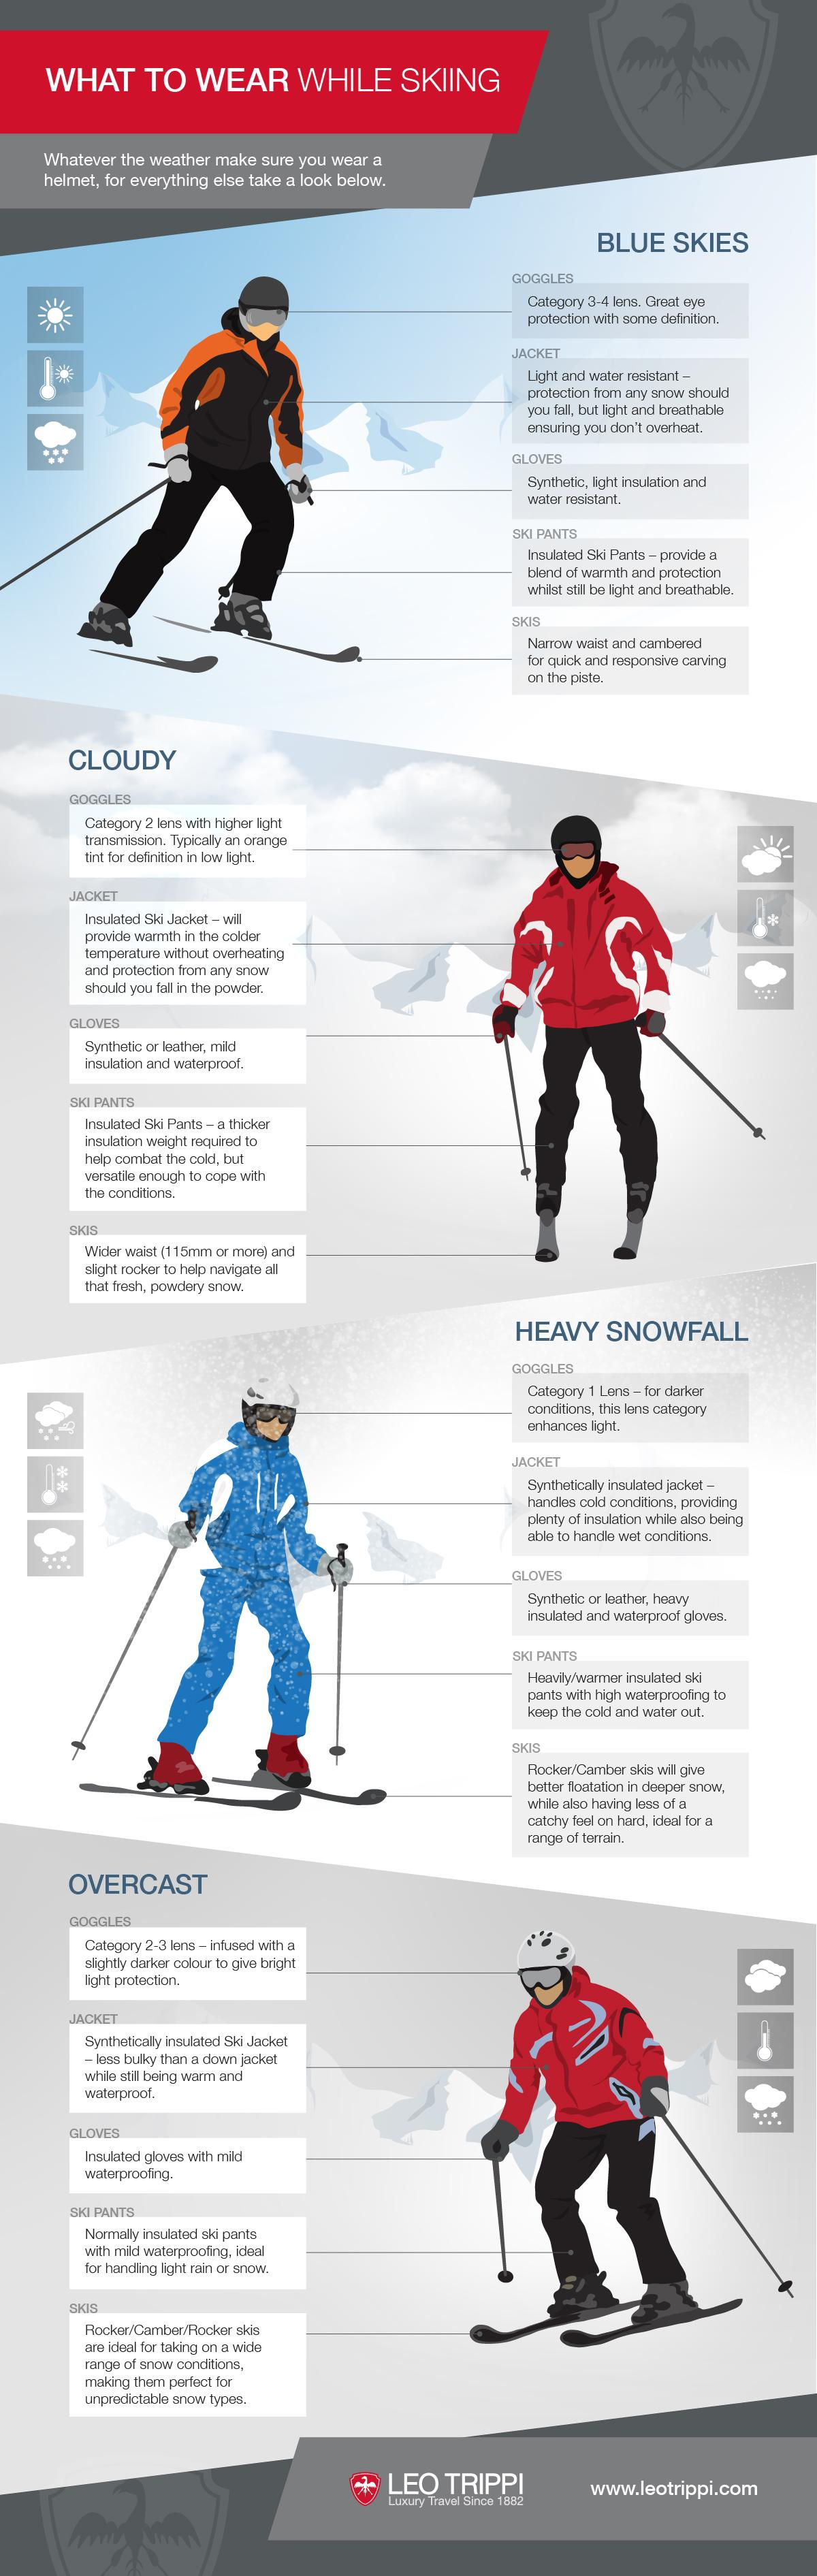 What To Wear While Skiing by Leo Trippi